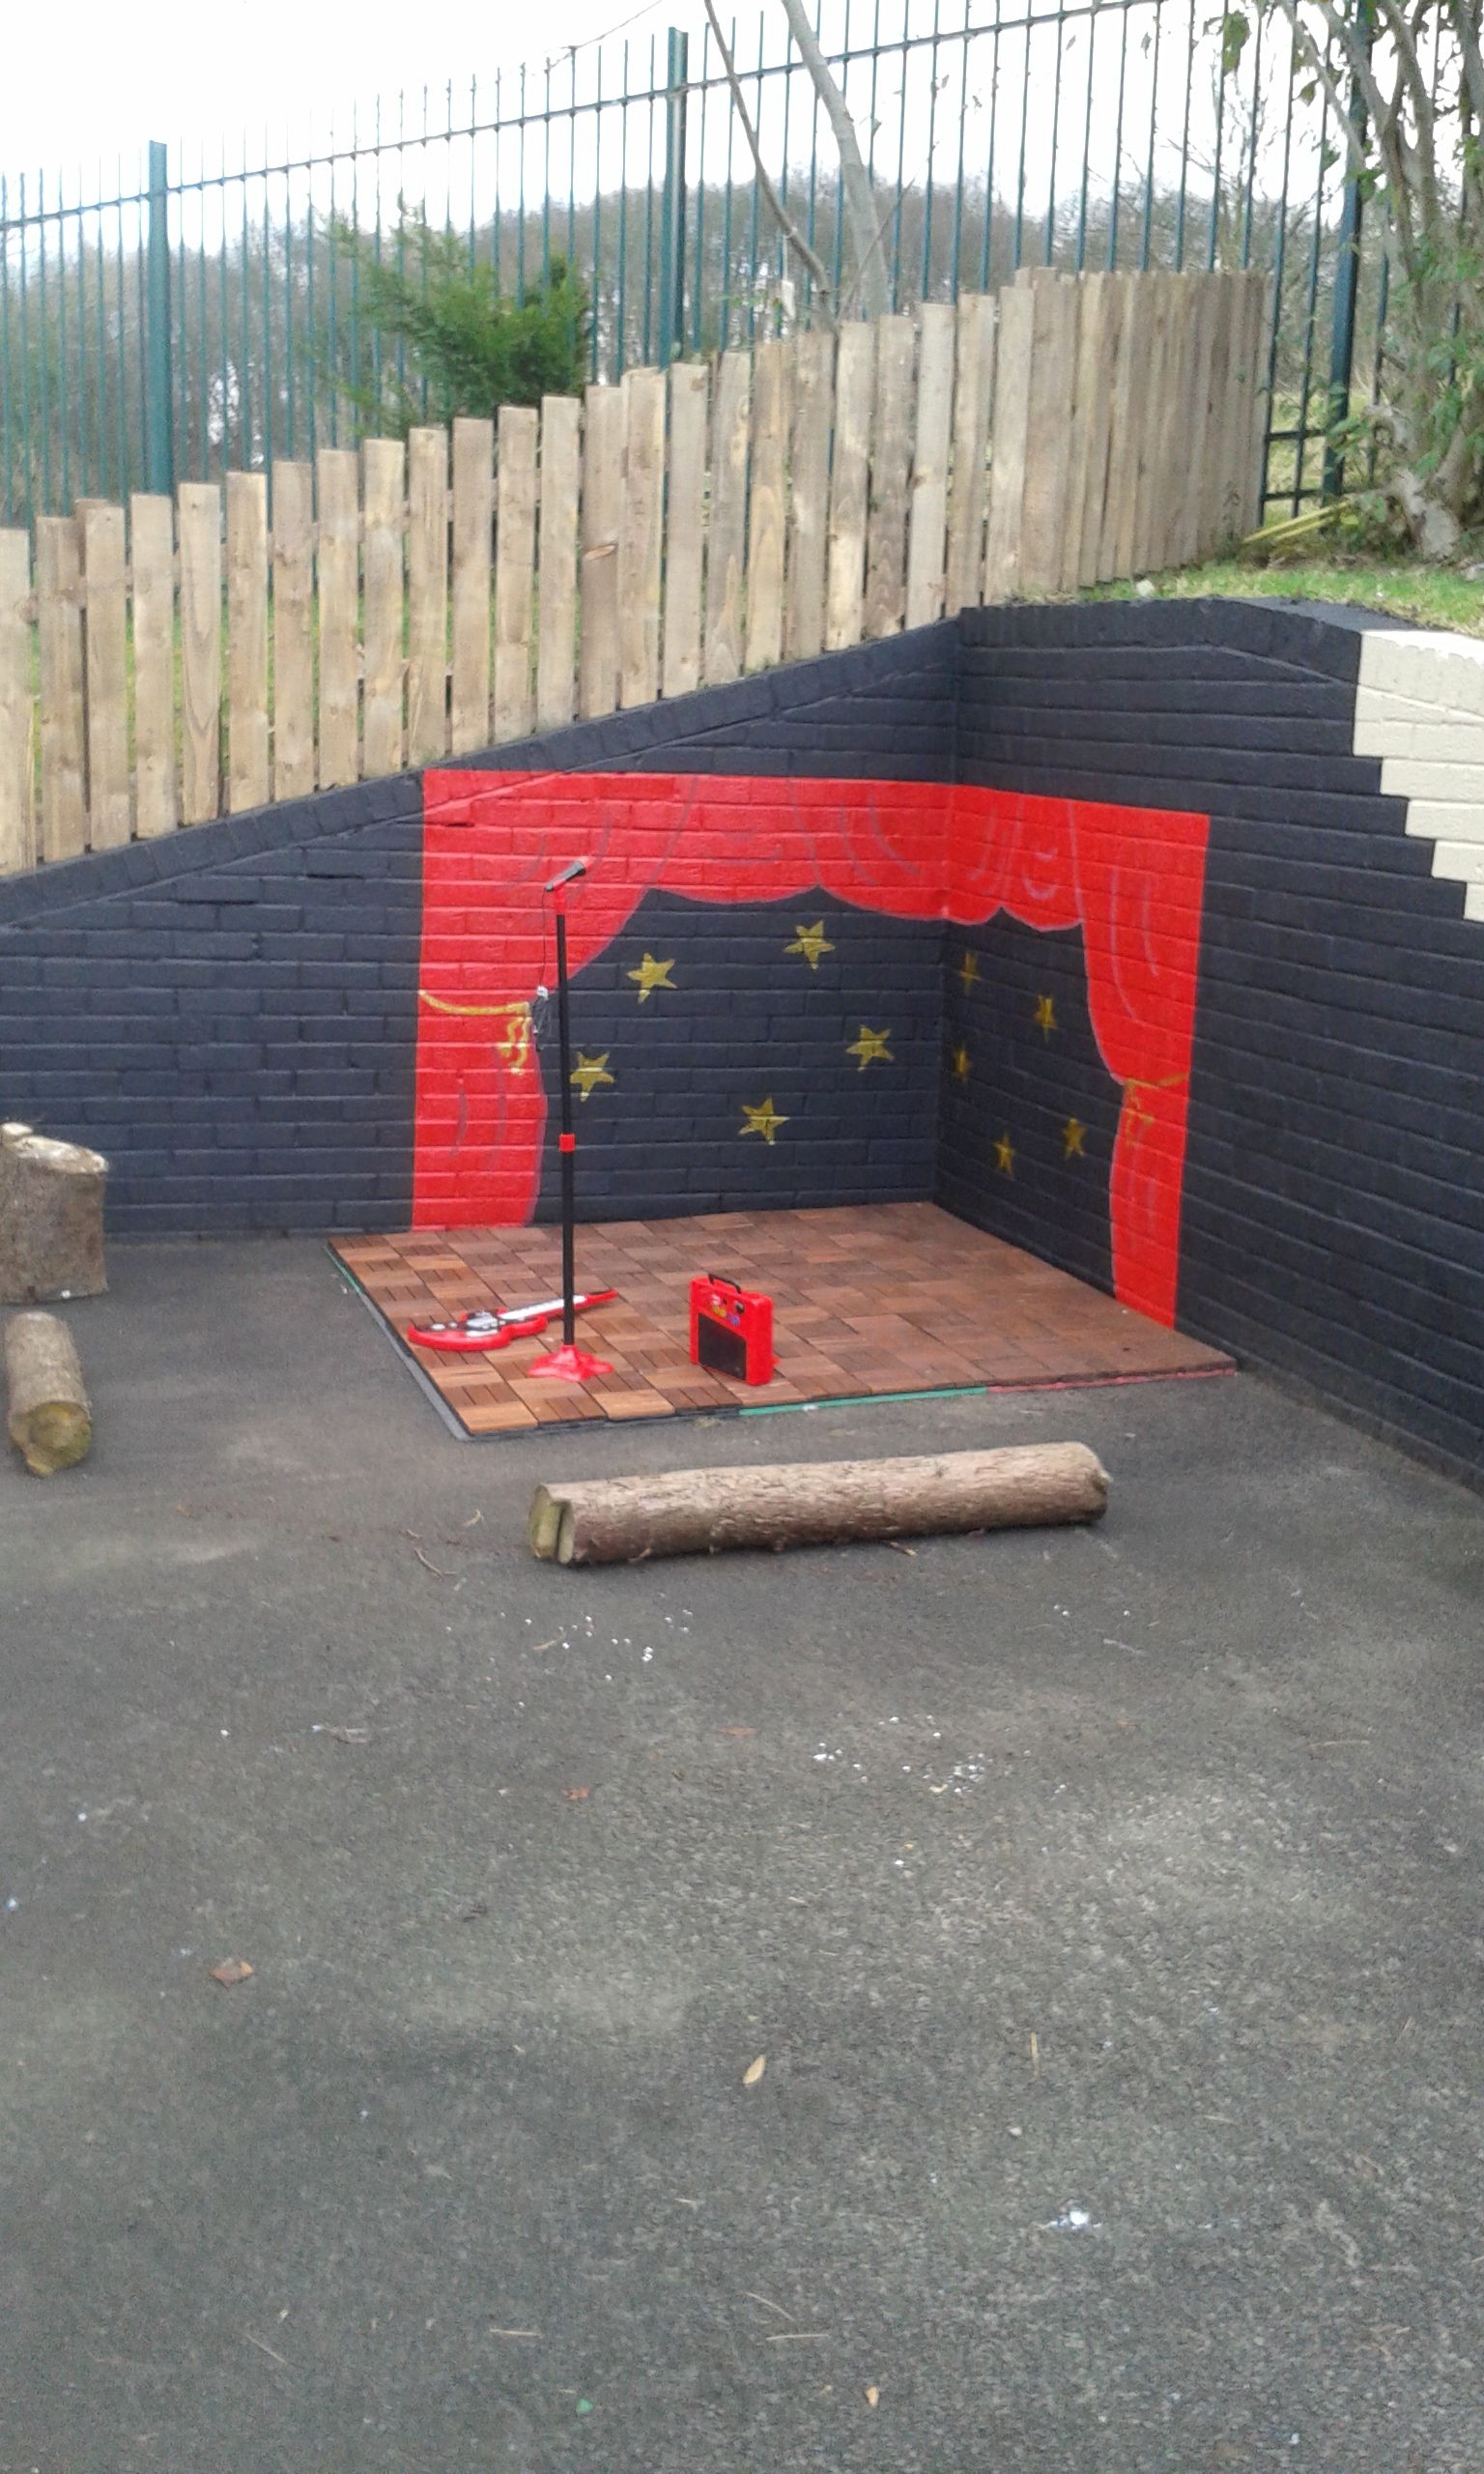 Dramatic play area outside, in closed by two walls. Change